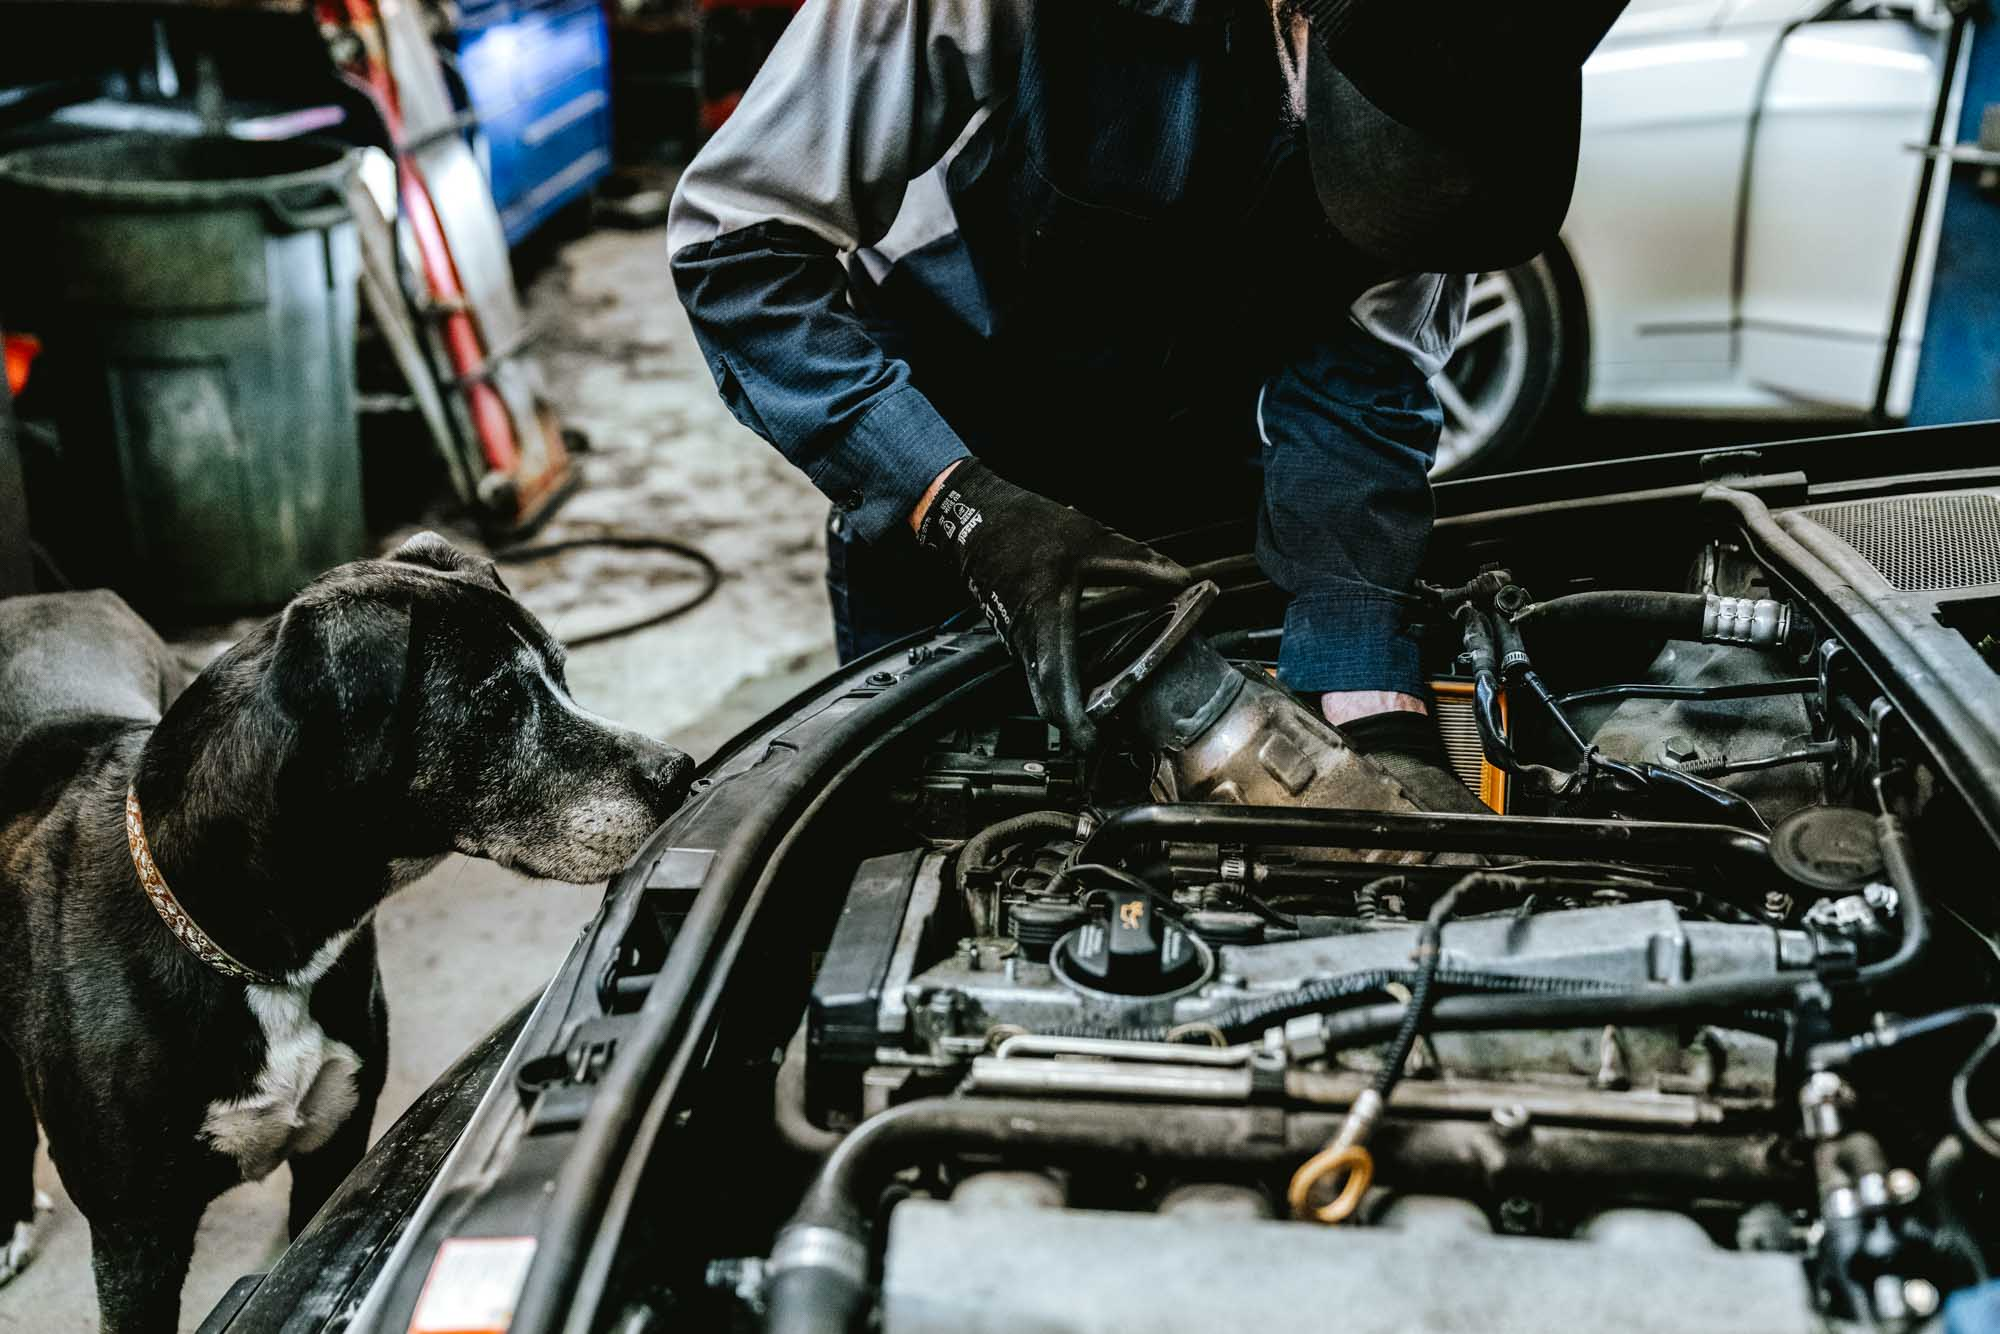 We Fix it Right the First Time - No matter what make or model of vehicle you own, domestic or import, our expert ASE Certified Technicians can do the job. All work is covered by our 3 year/36,000 mile warranties.